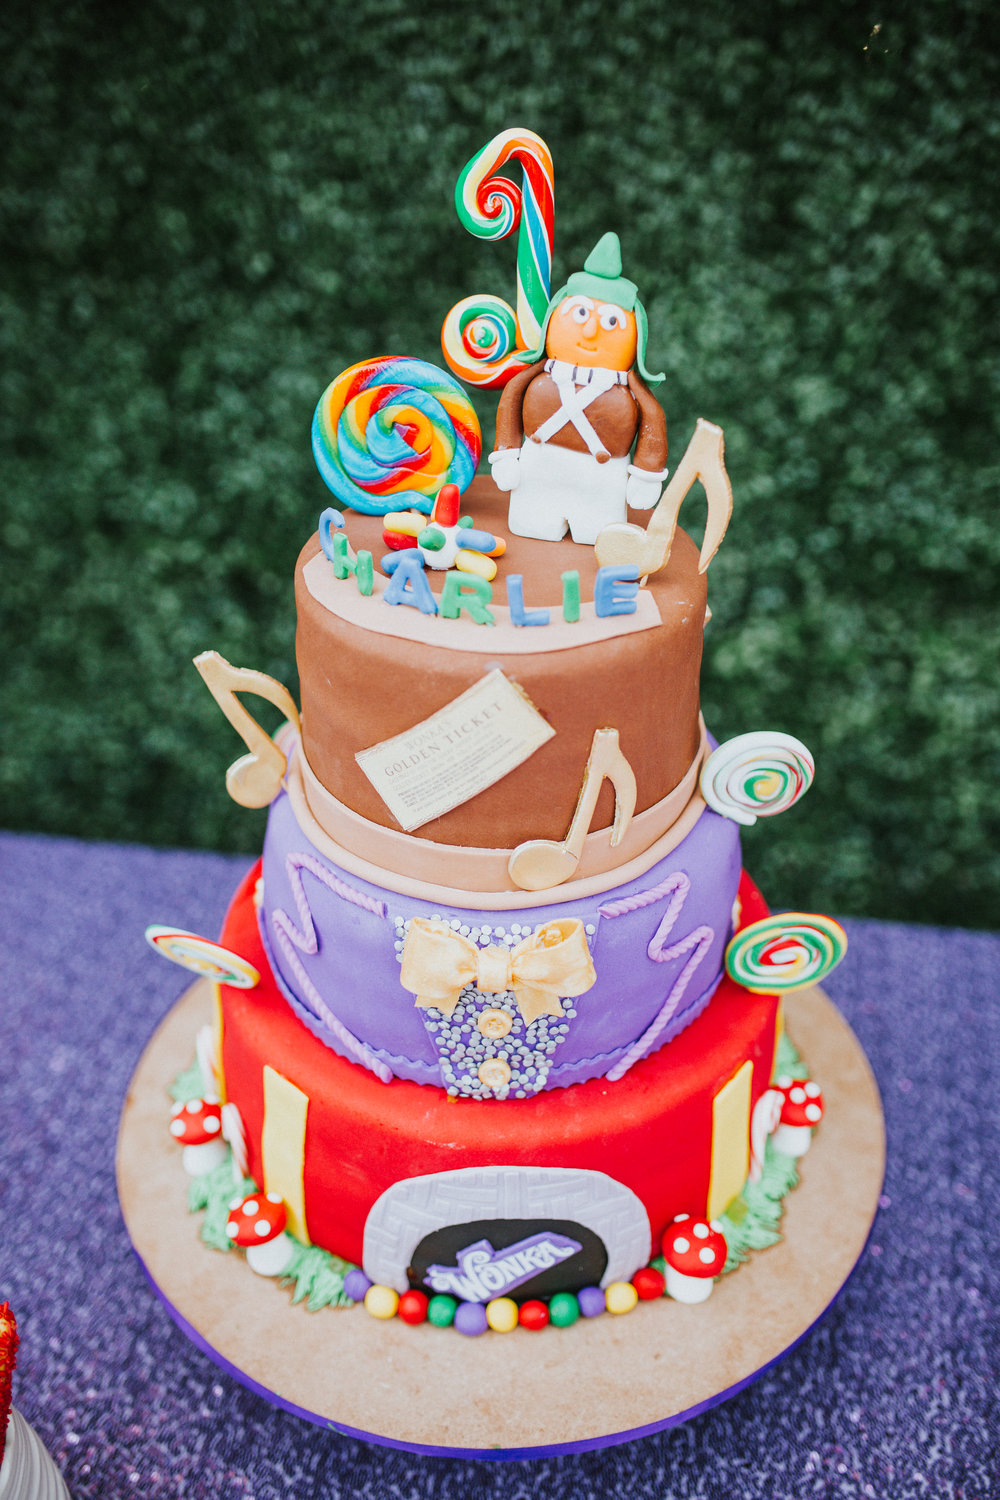 Willy Wonka Themed Birthday Party - Scarlet Plan & Design Atlanta Party Event Planners & Designers (42).jpg